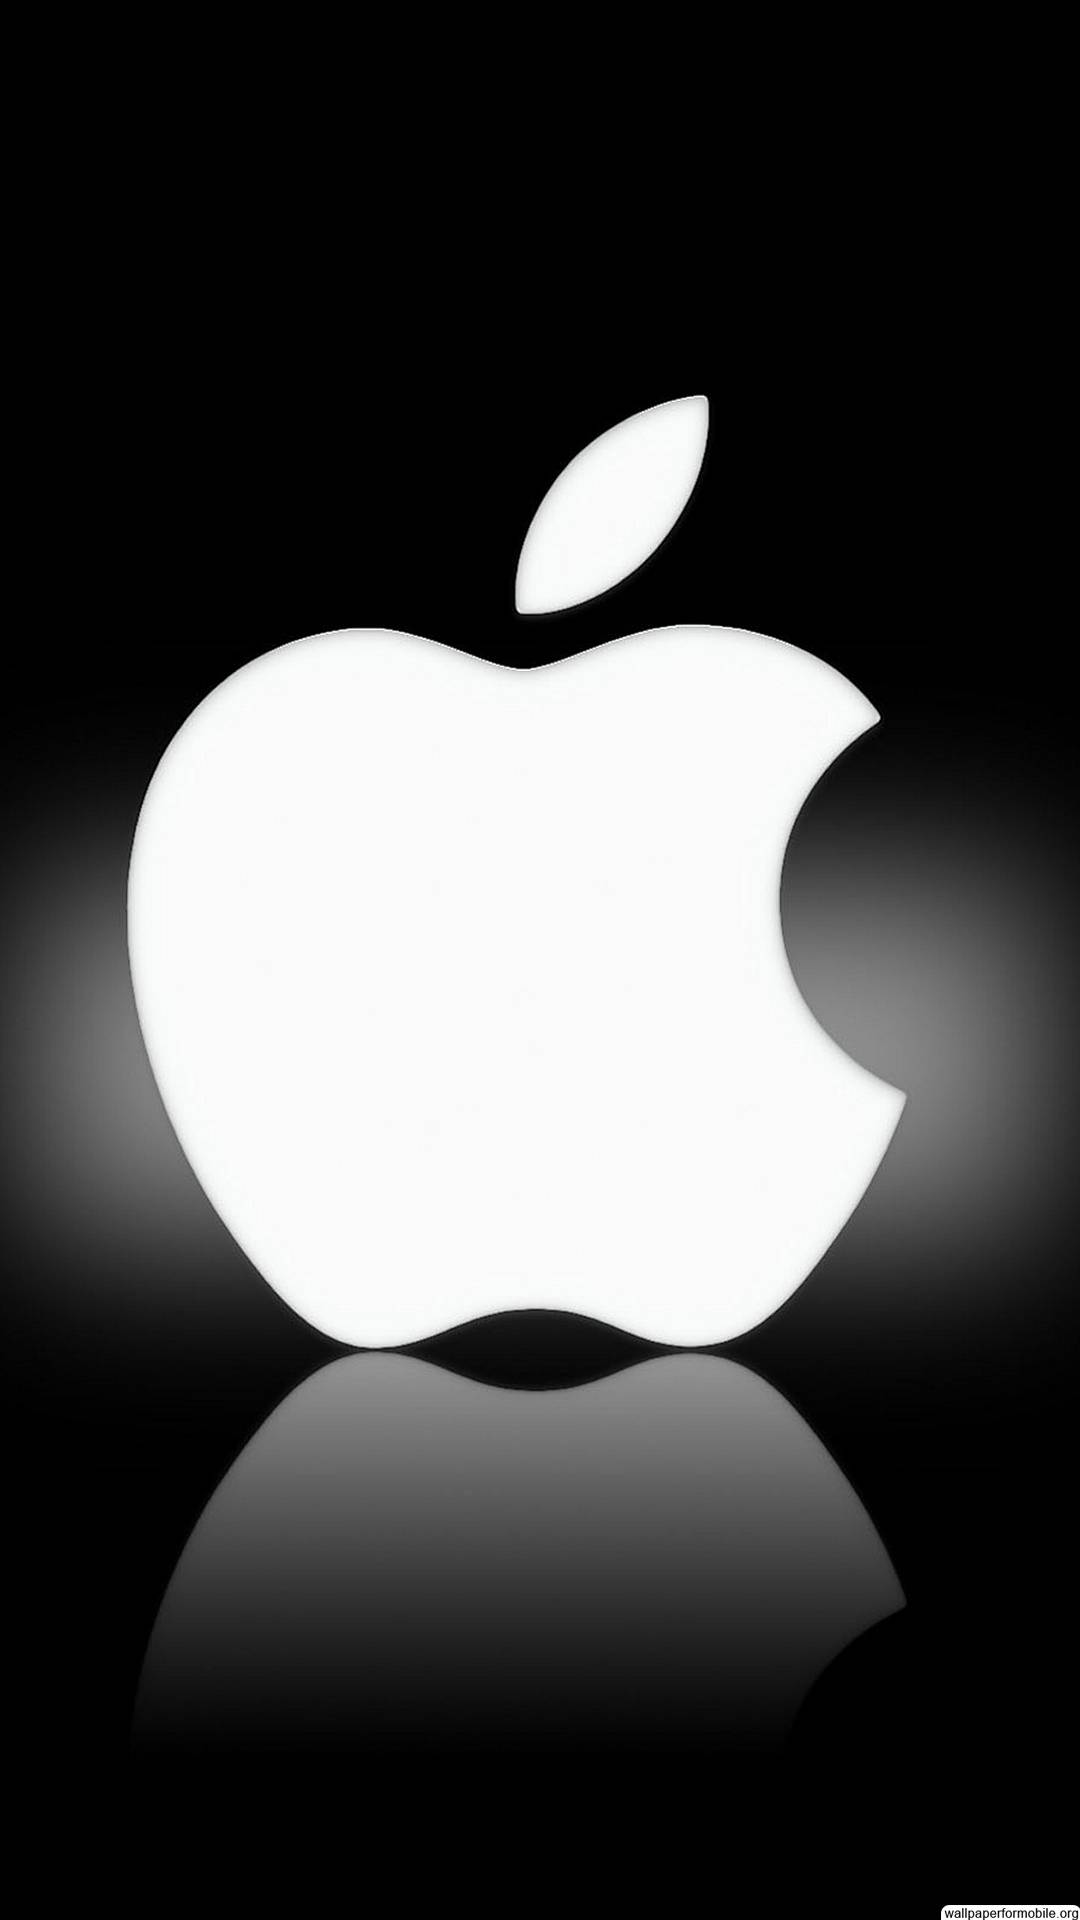 Black And White Apple Wallpaper | Wallpaper for Mobile